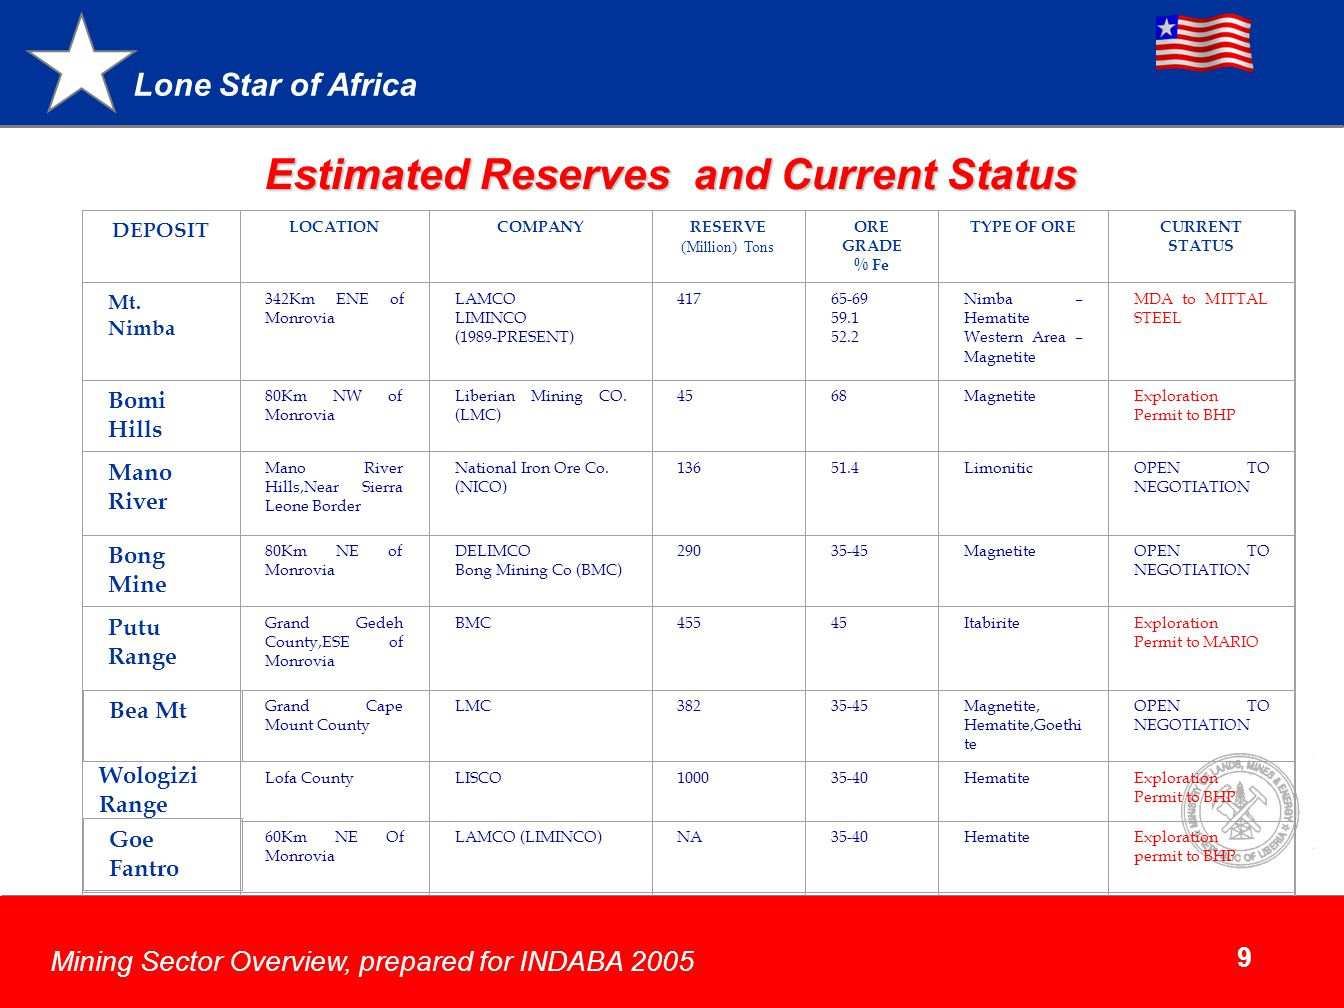 Estimated Reserves and Current Status